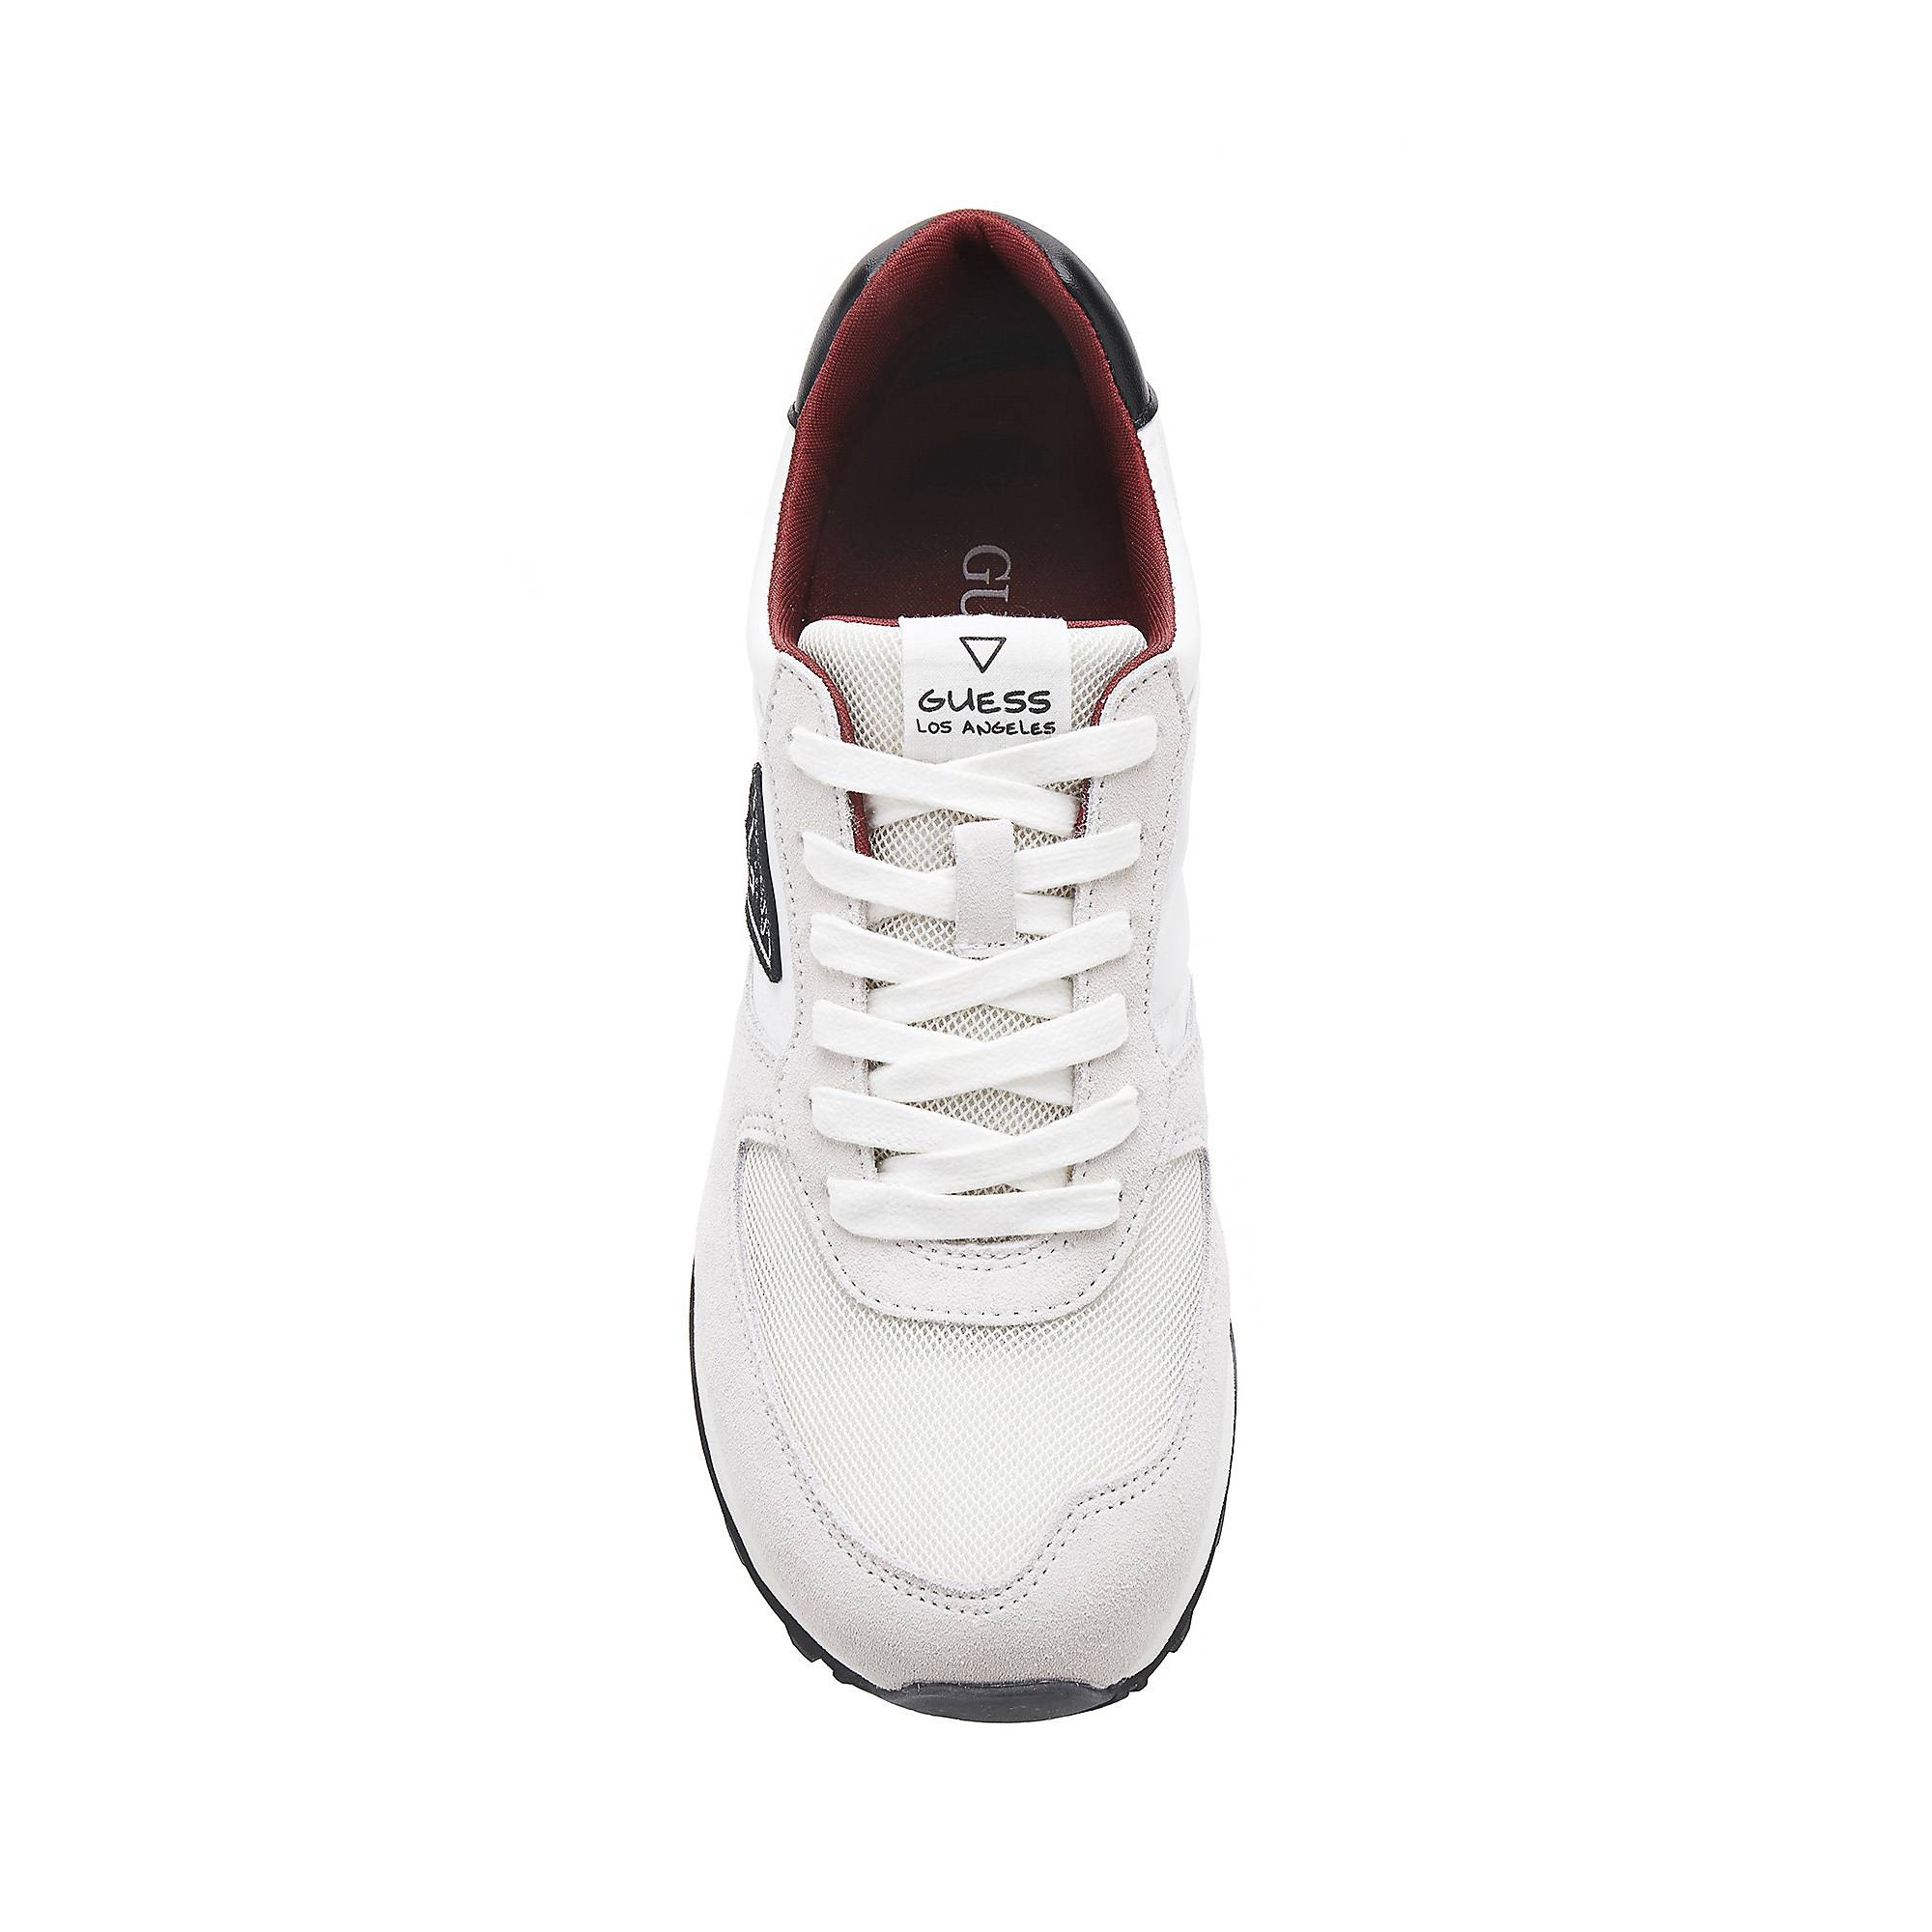 Active Blanc Guess Man Baskets Homme Charlie j4LAqR35